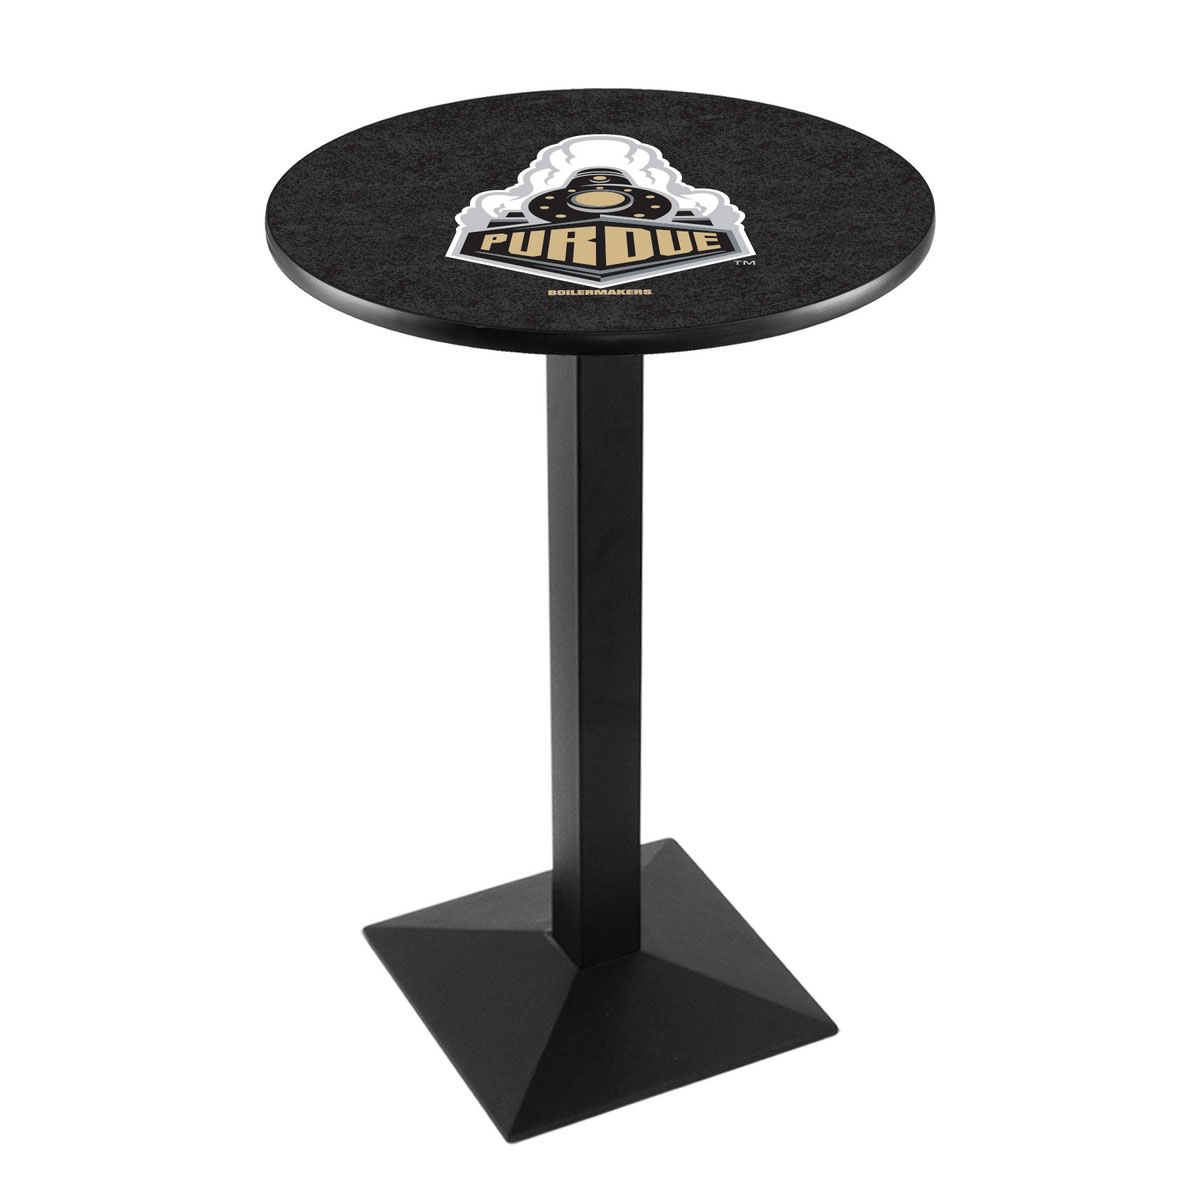 Purchase Purdue Logo Pub Bar Table Square Stand Product Photo